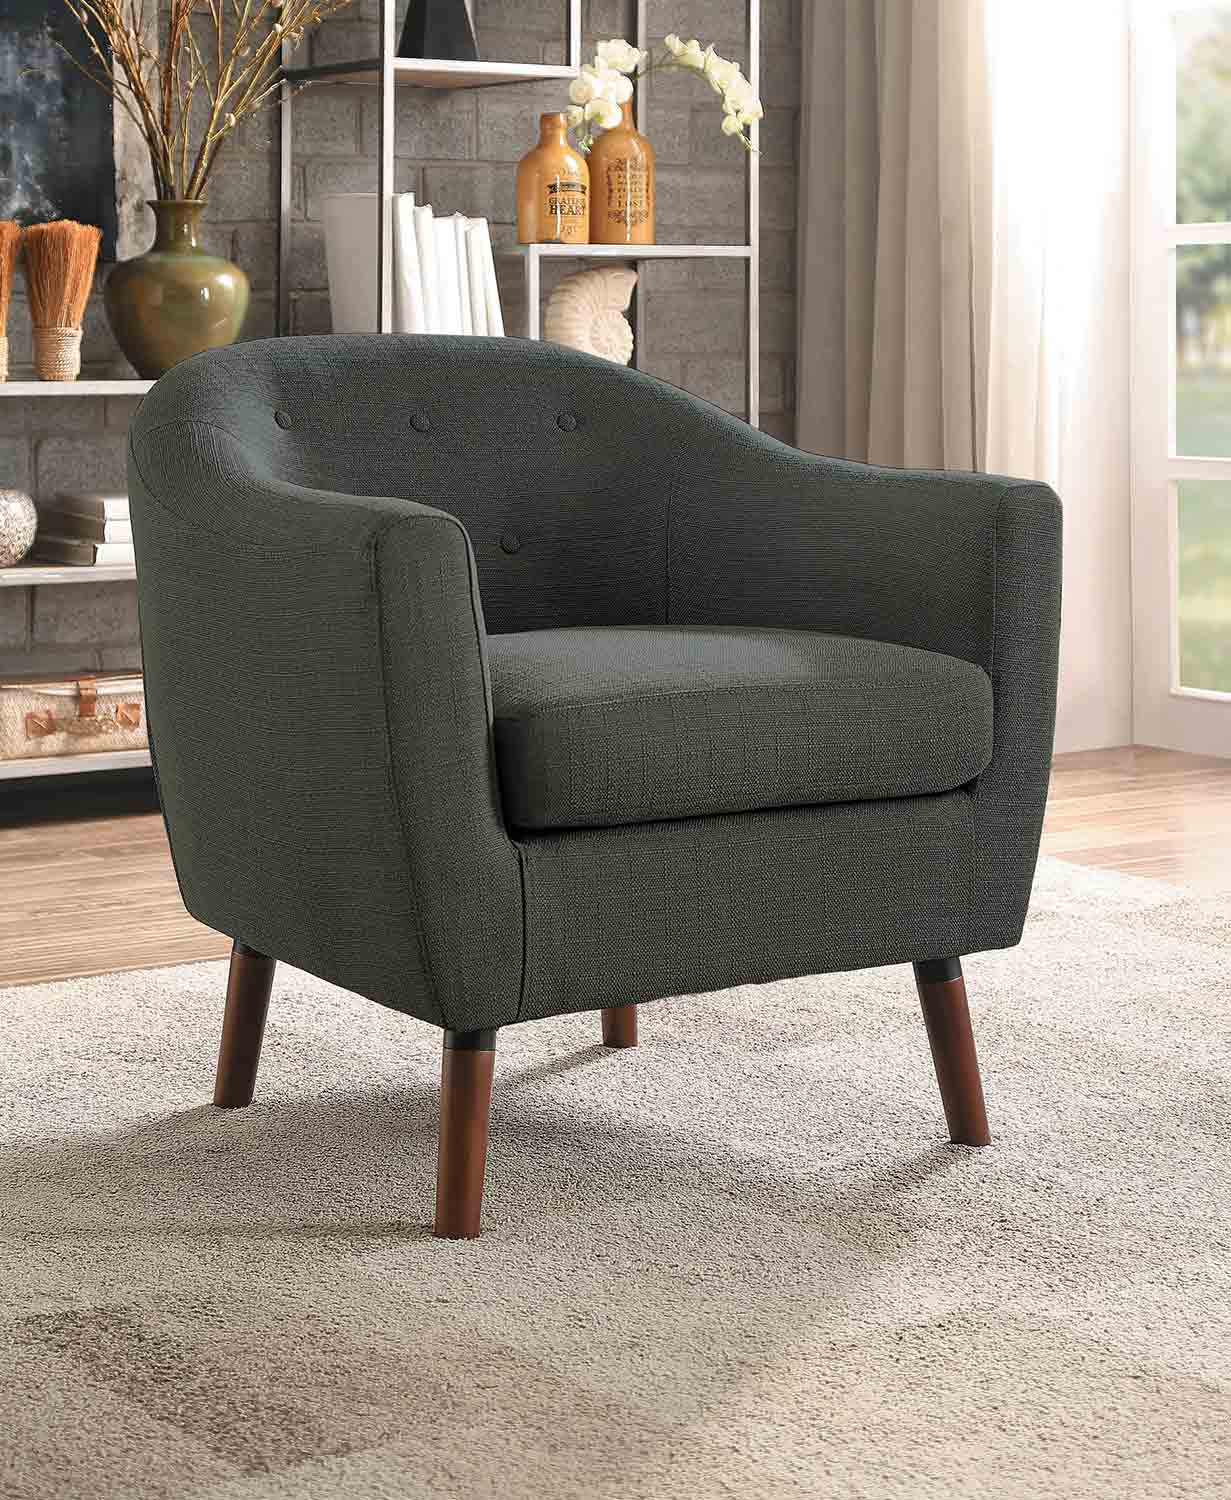 Homelegance Lucille Accent Chair - Gray